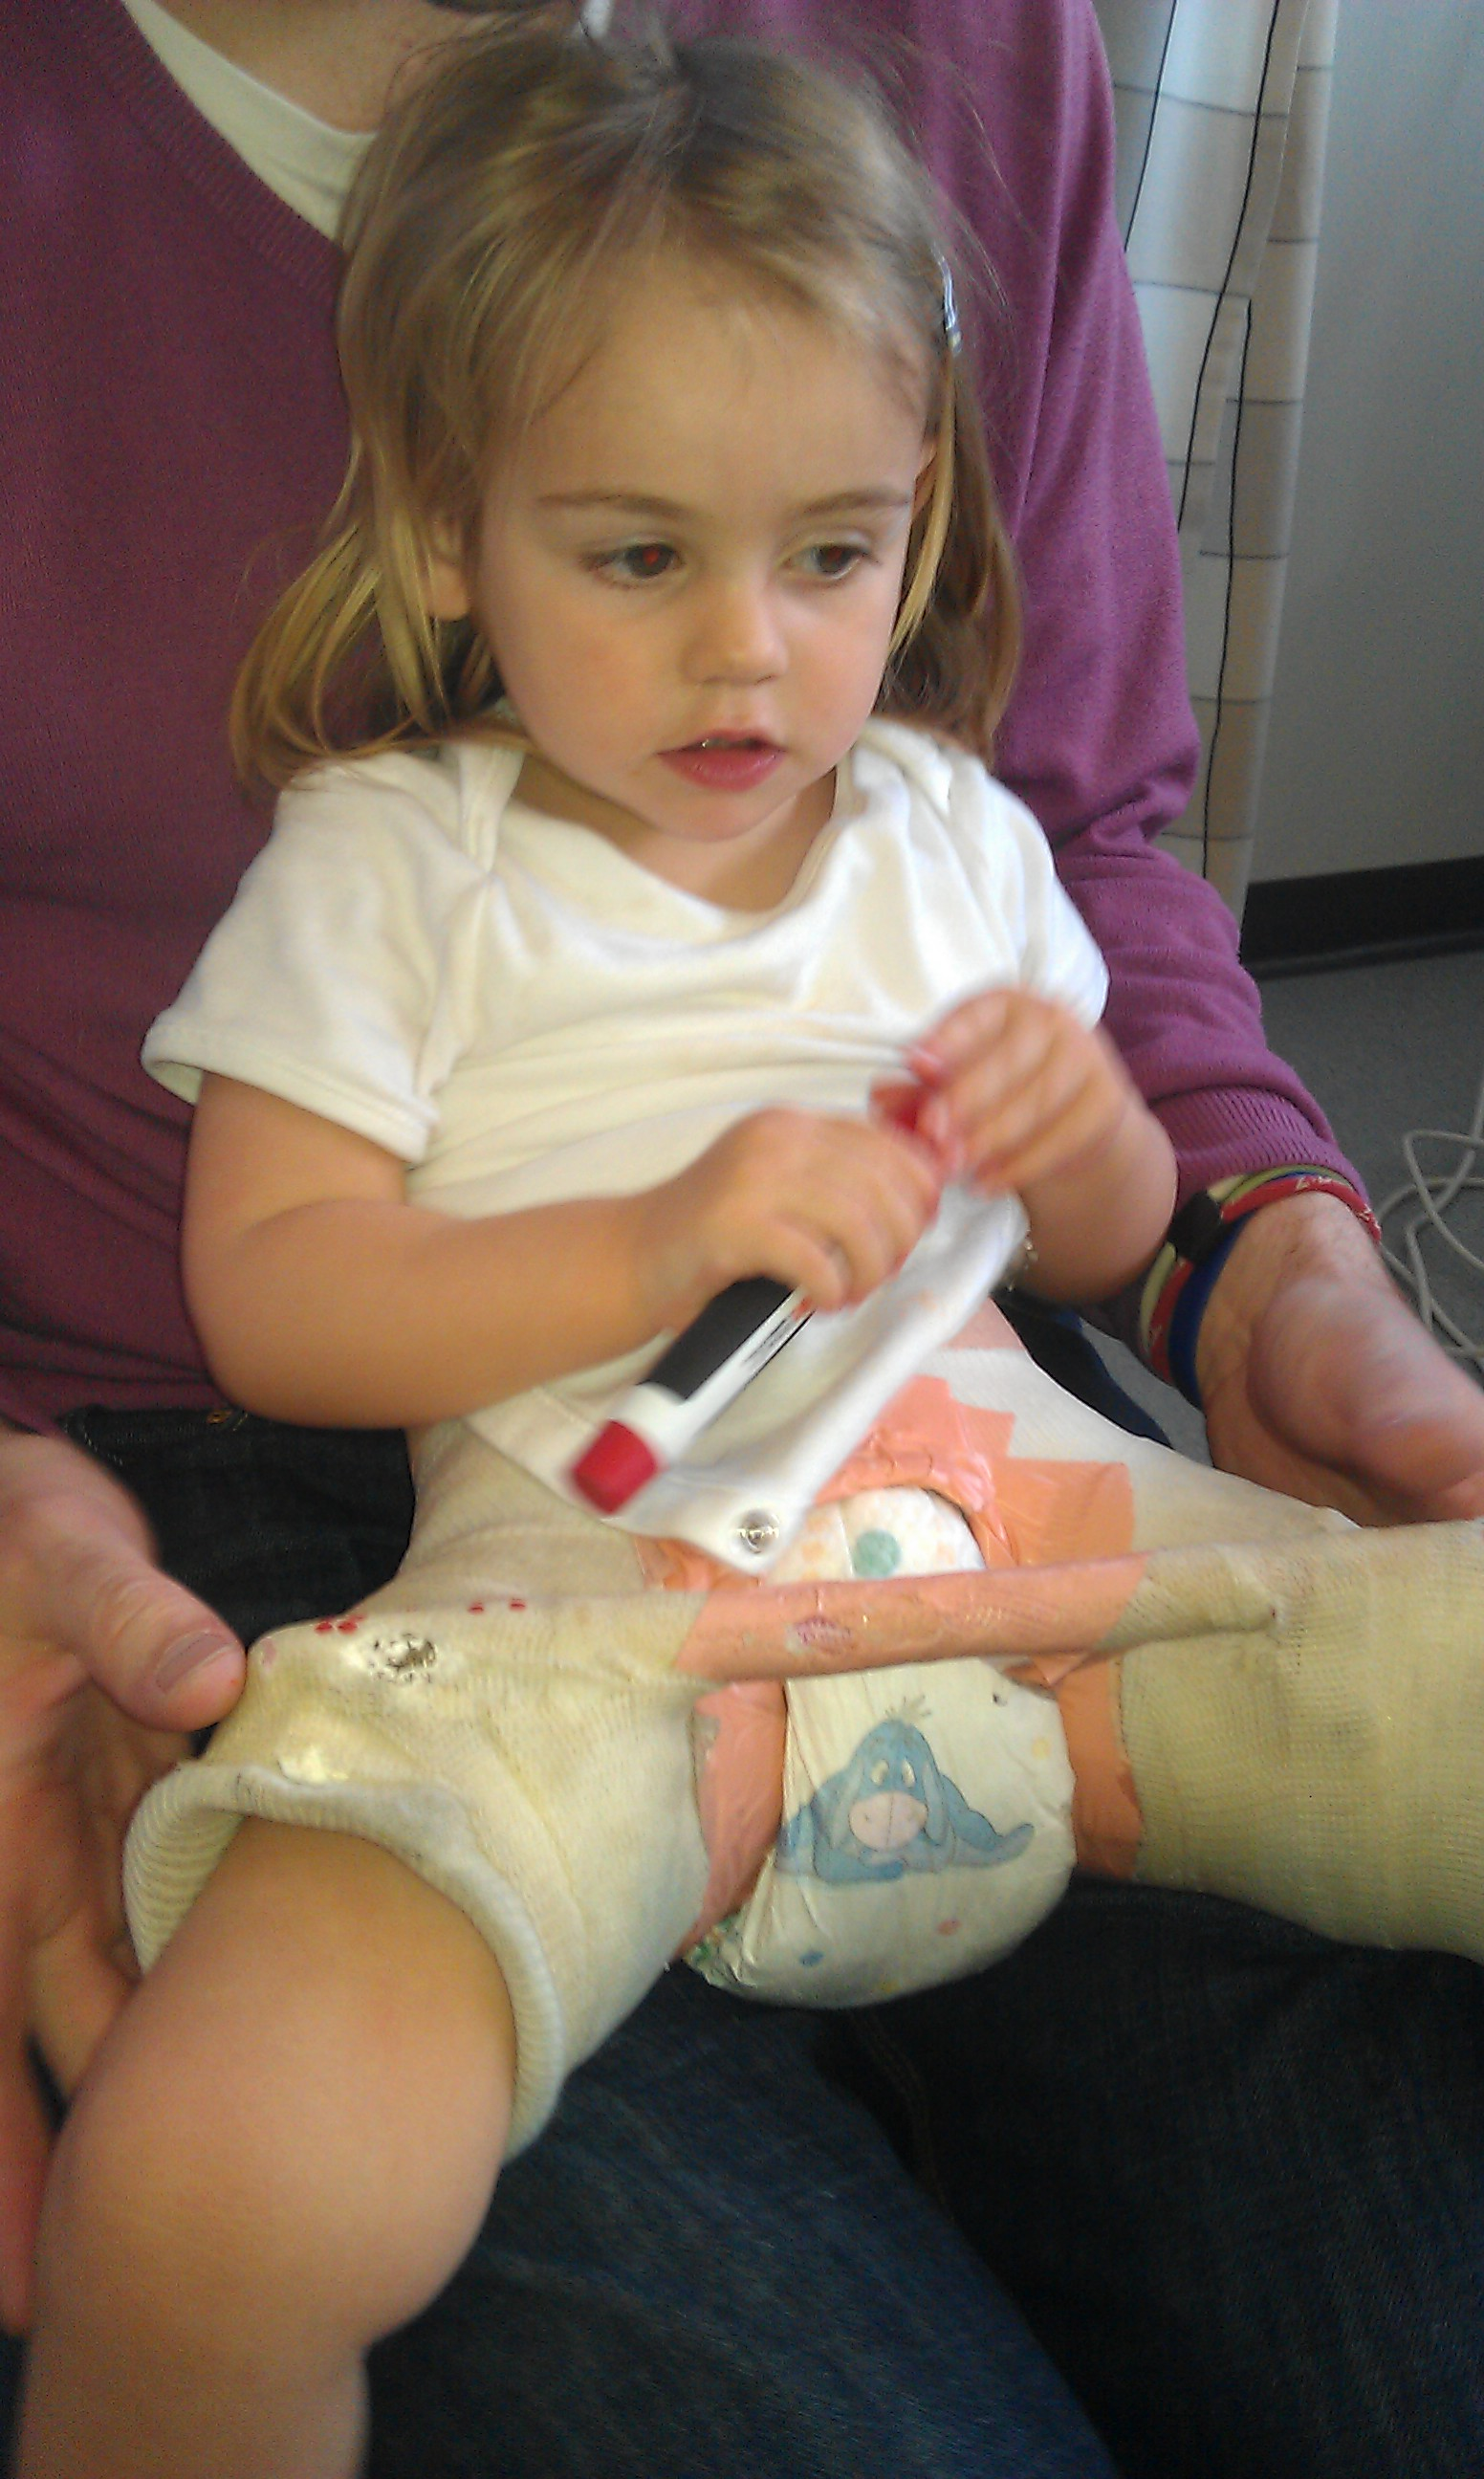 Ddh How To Prevent Hip Dysplasia In Babies Northernmum